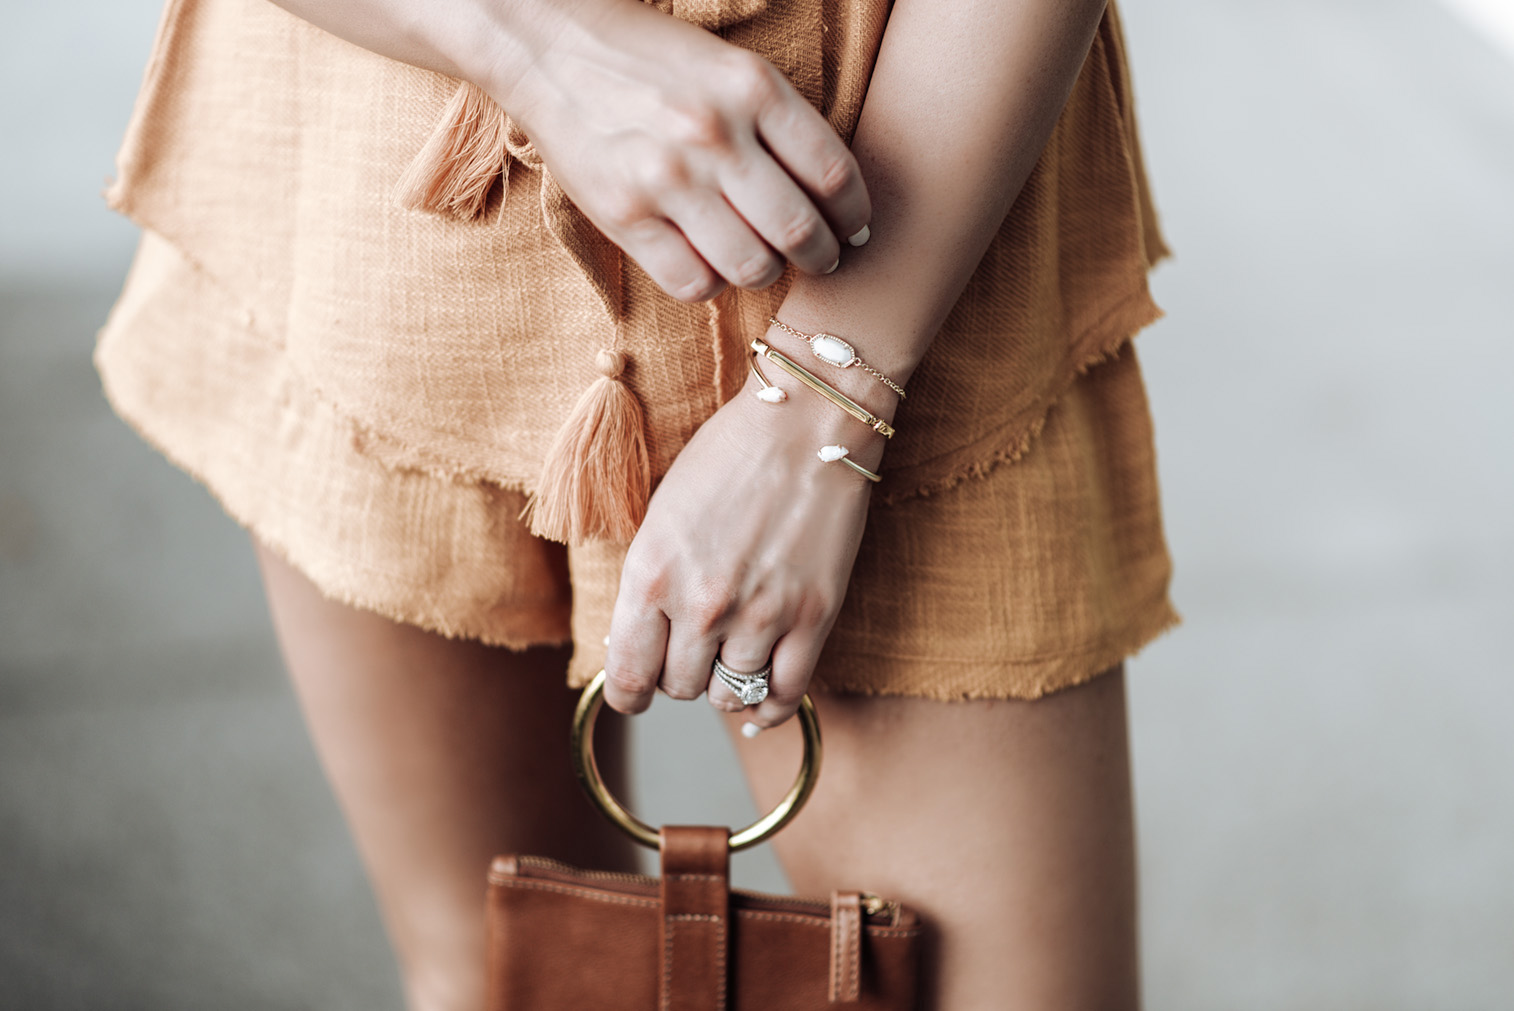 Free People So Simple Set (Size small)  | Kendra Scott Elaina bracelet  & the Jackson Pinch bracelet (Available at Kendra Scott at the Rice Village Shopping Center) | Mini Marie Pendant | Signature Bandle Monica Vinader | OTAAT/MYERS Collective Ring pouch